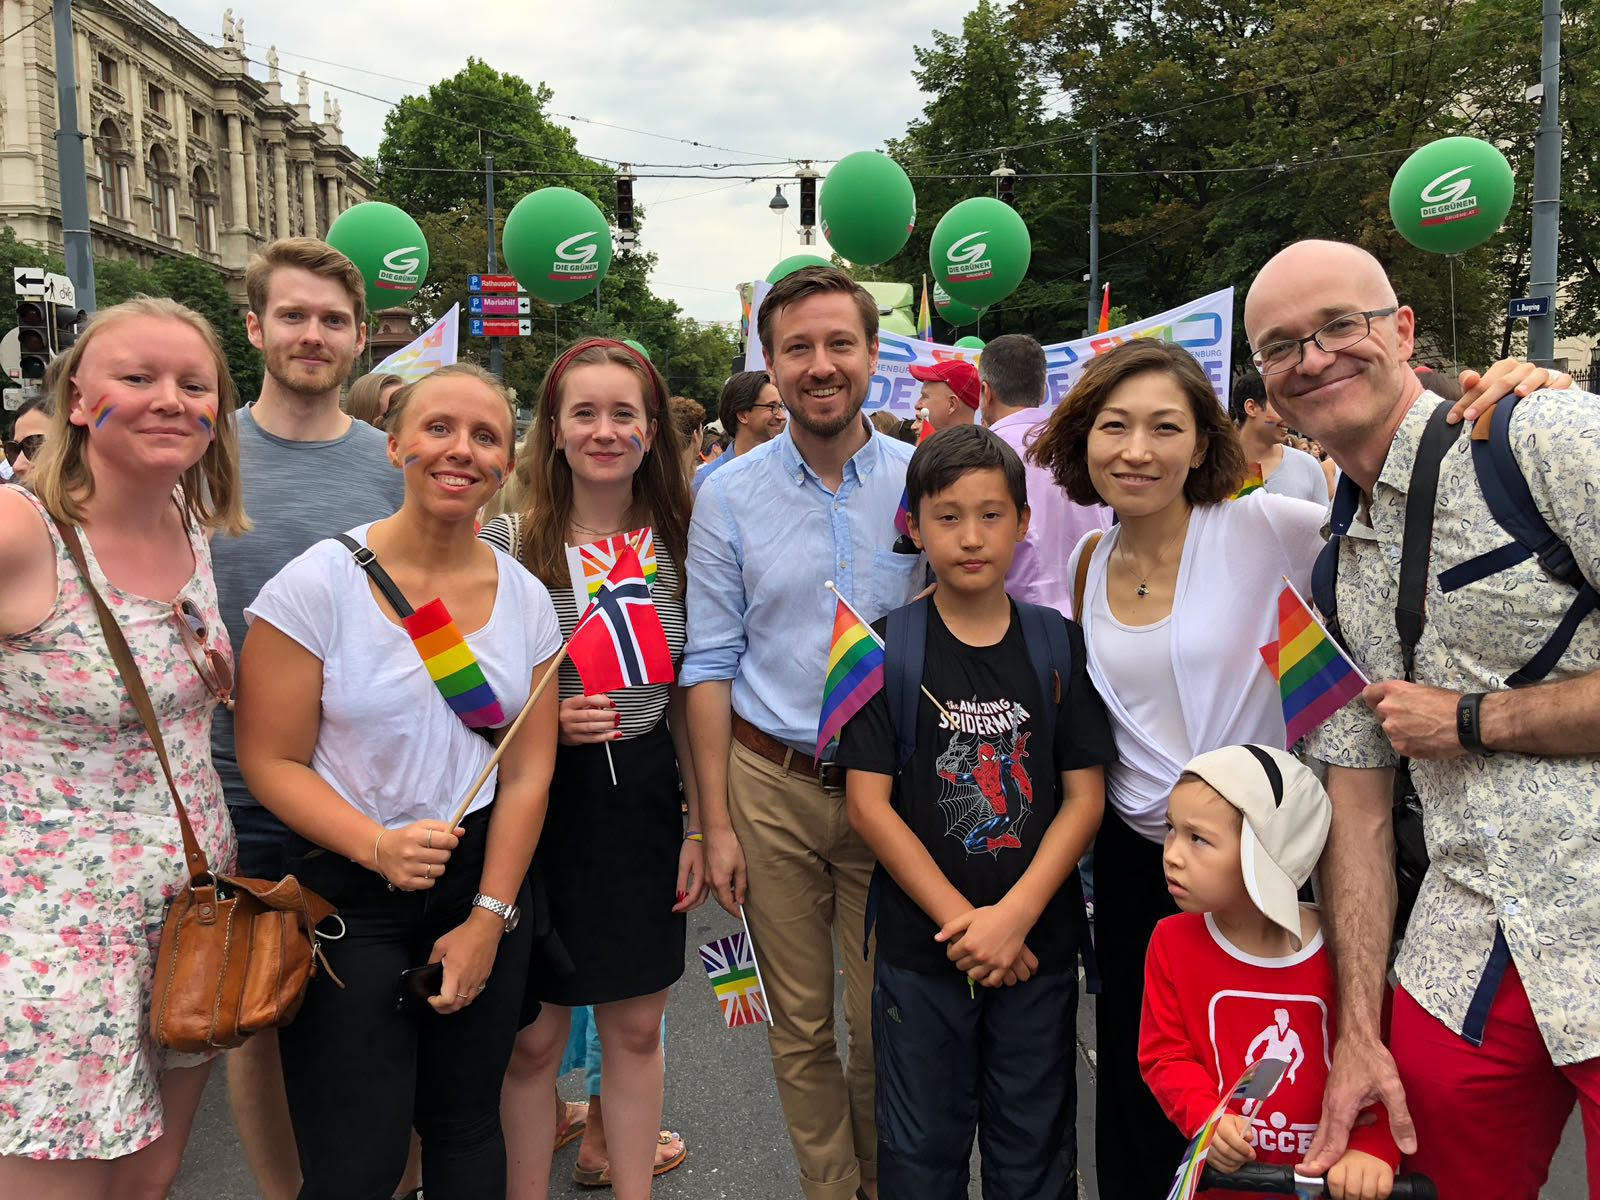 Norwegian participants at Pride in Vienna